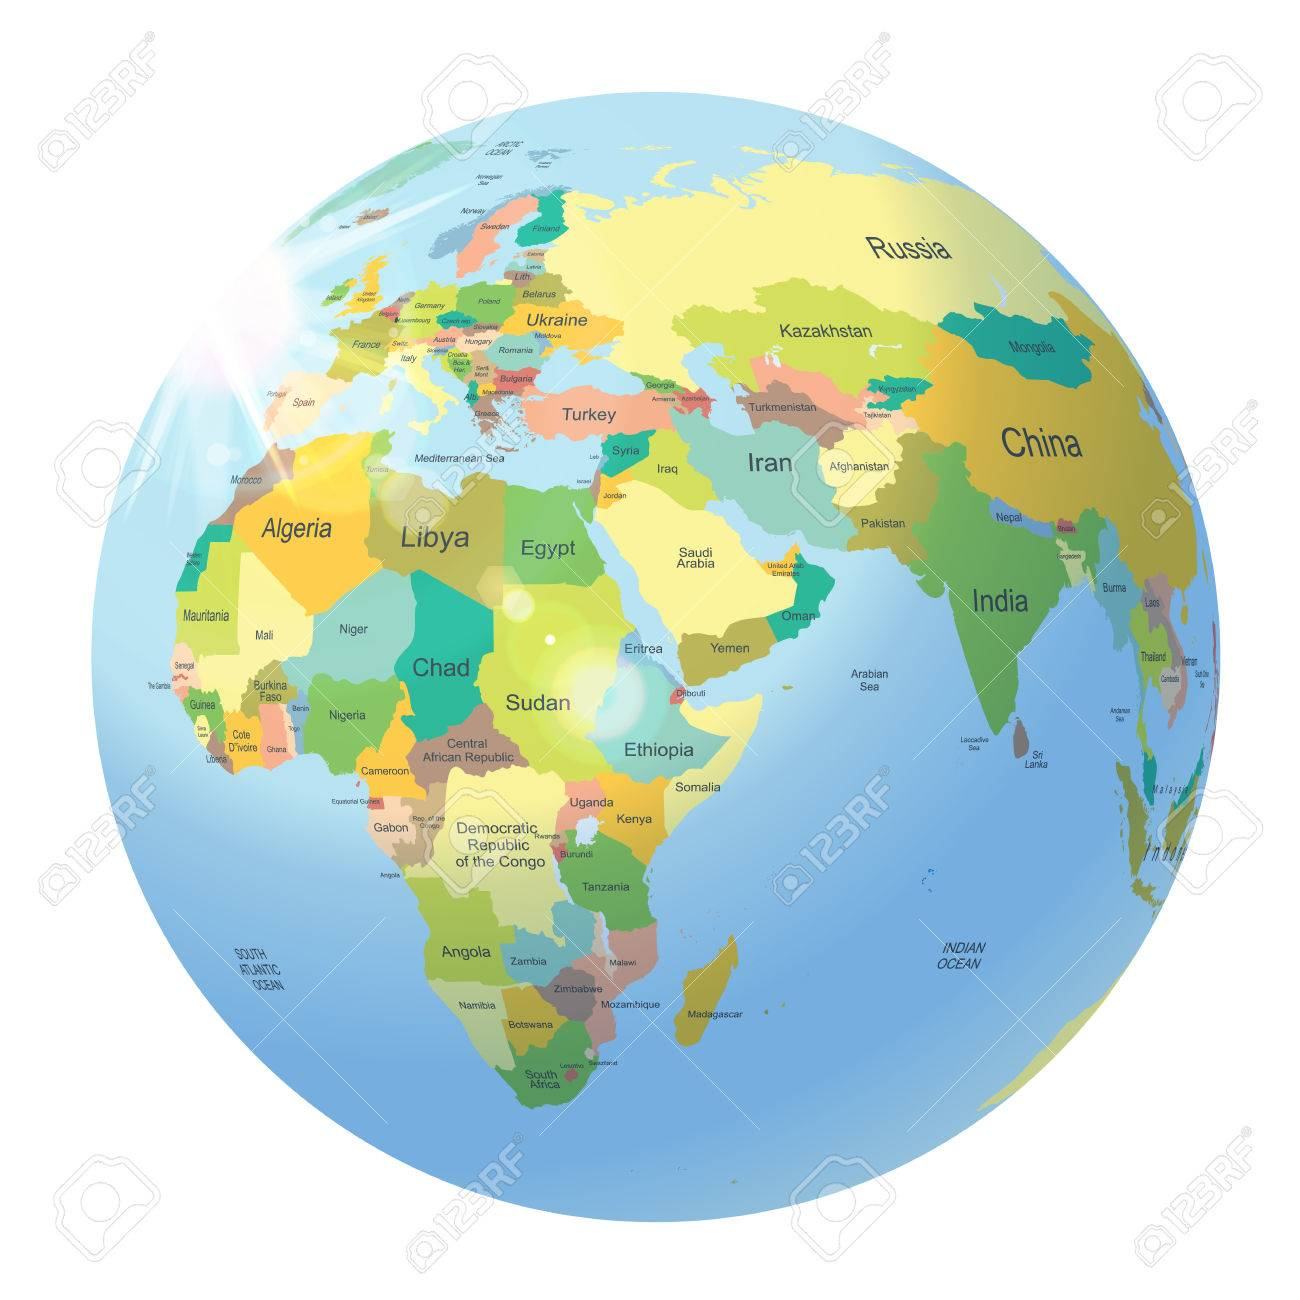 Globe with political world map isolated on white royalty free globe with political world map isolated on white stock vector 30109473 gumiabroncs Choice Image